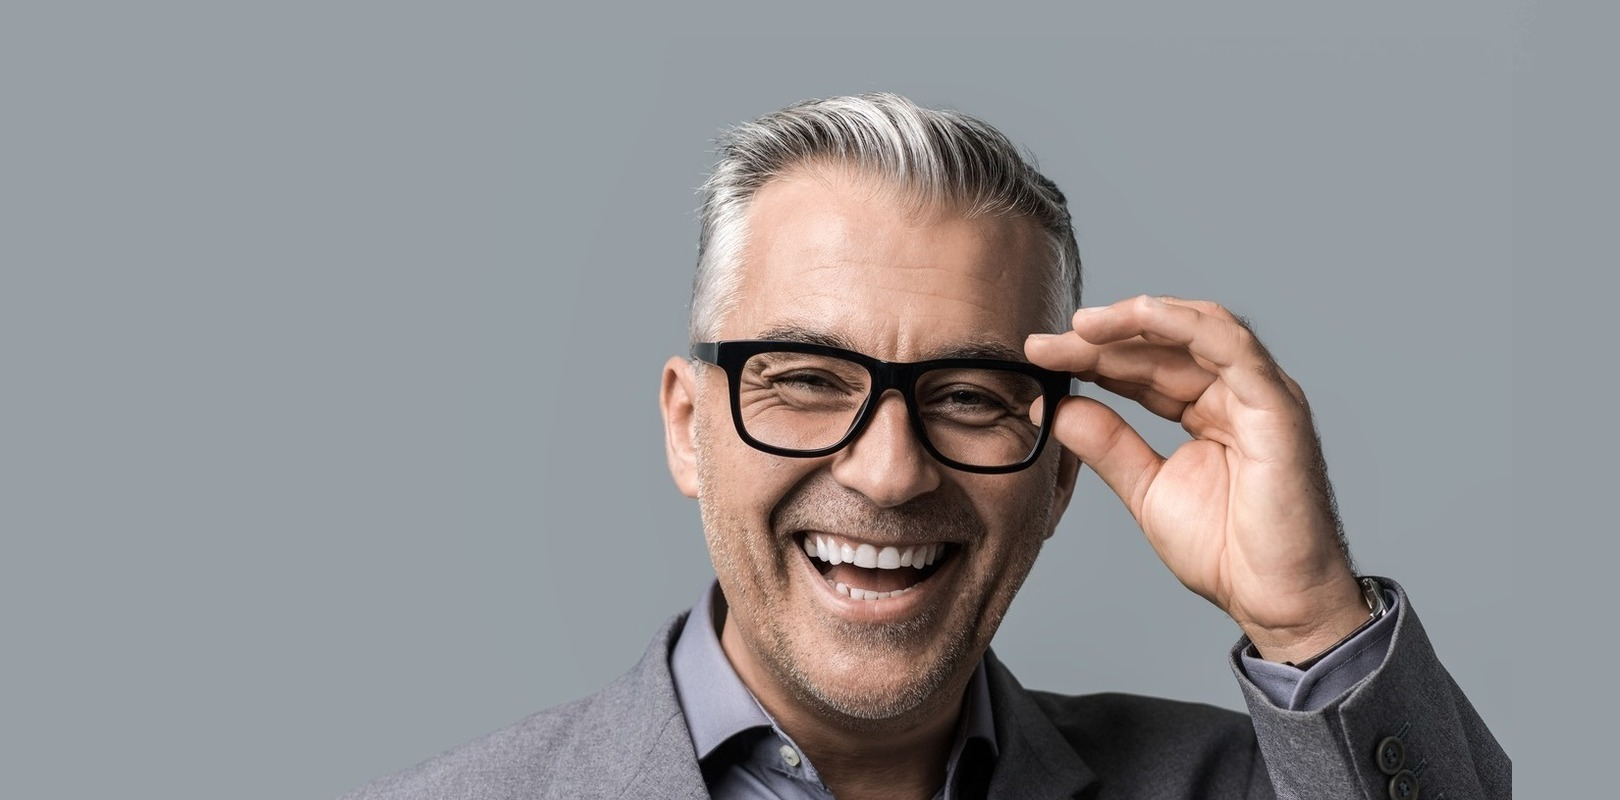 Middle aged man with glasses laughing